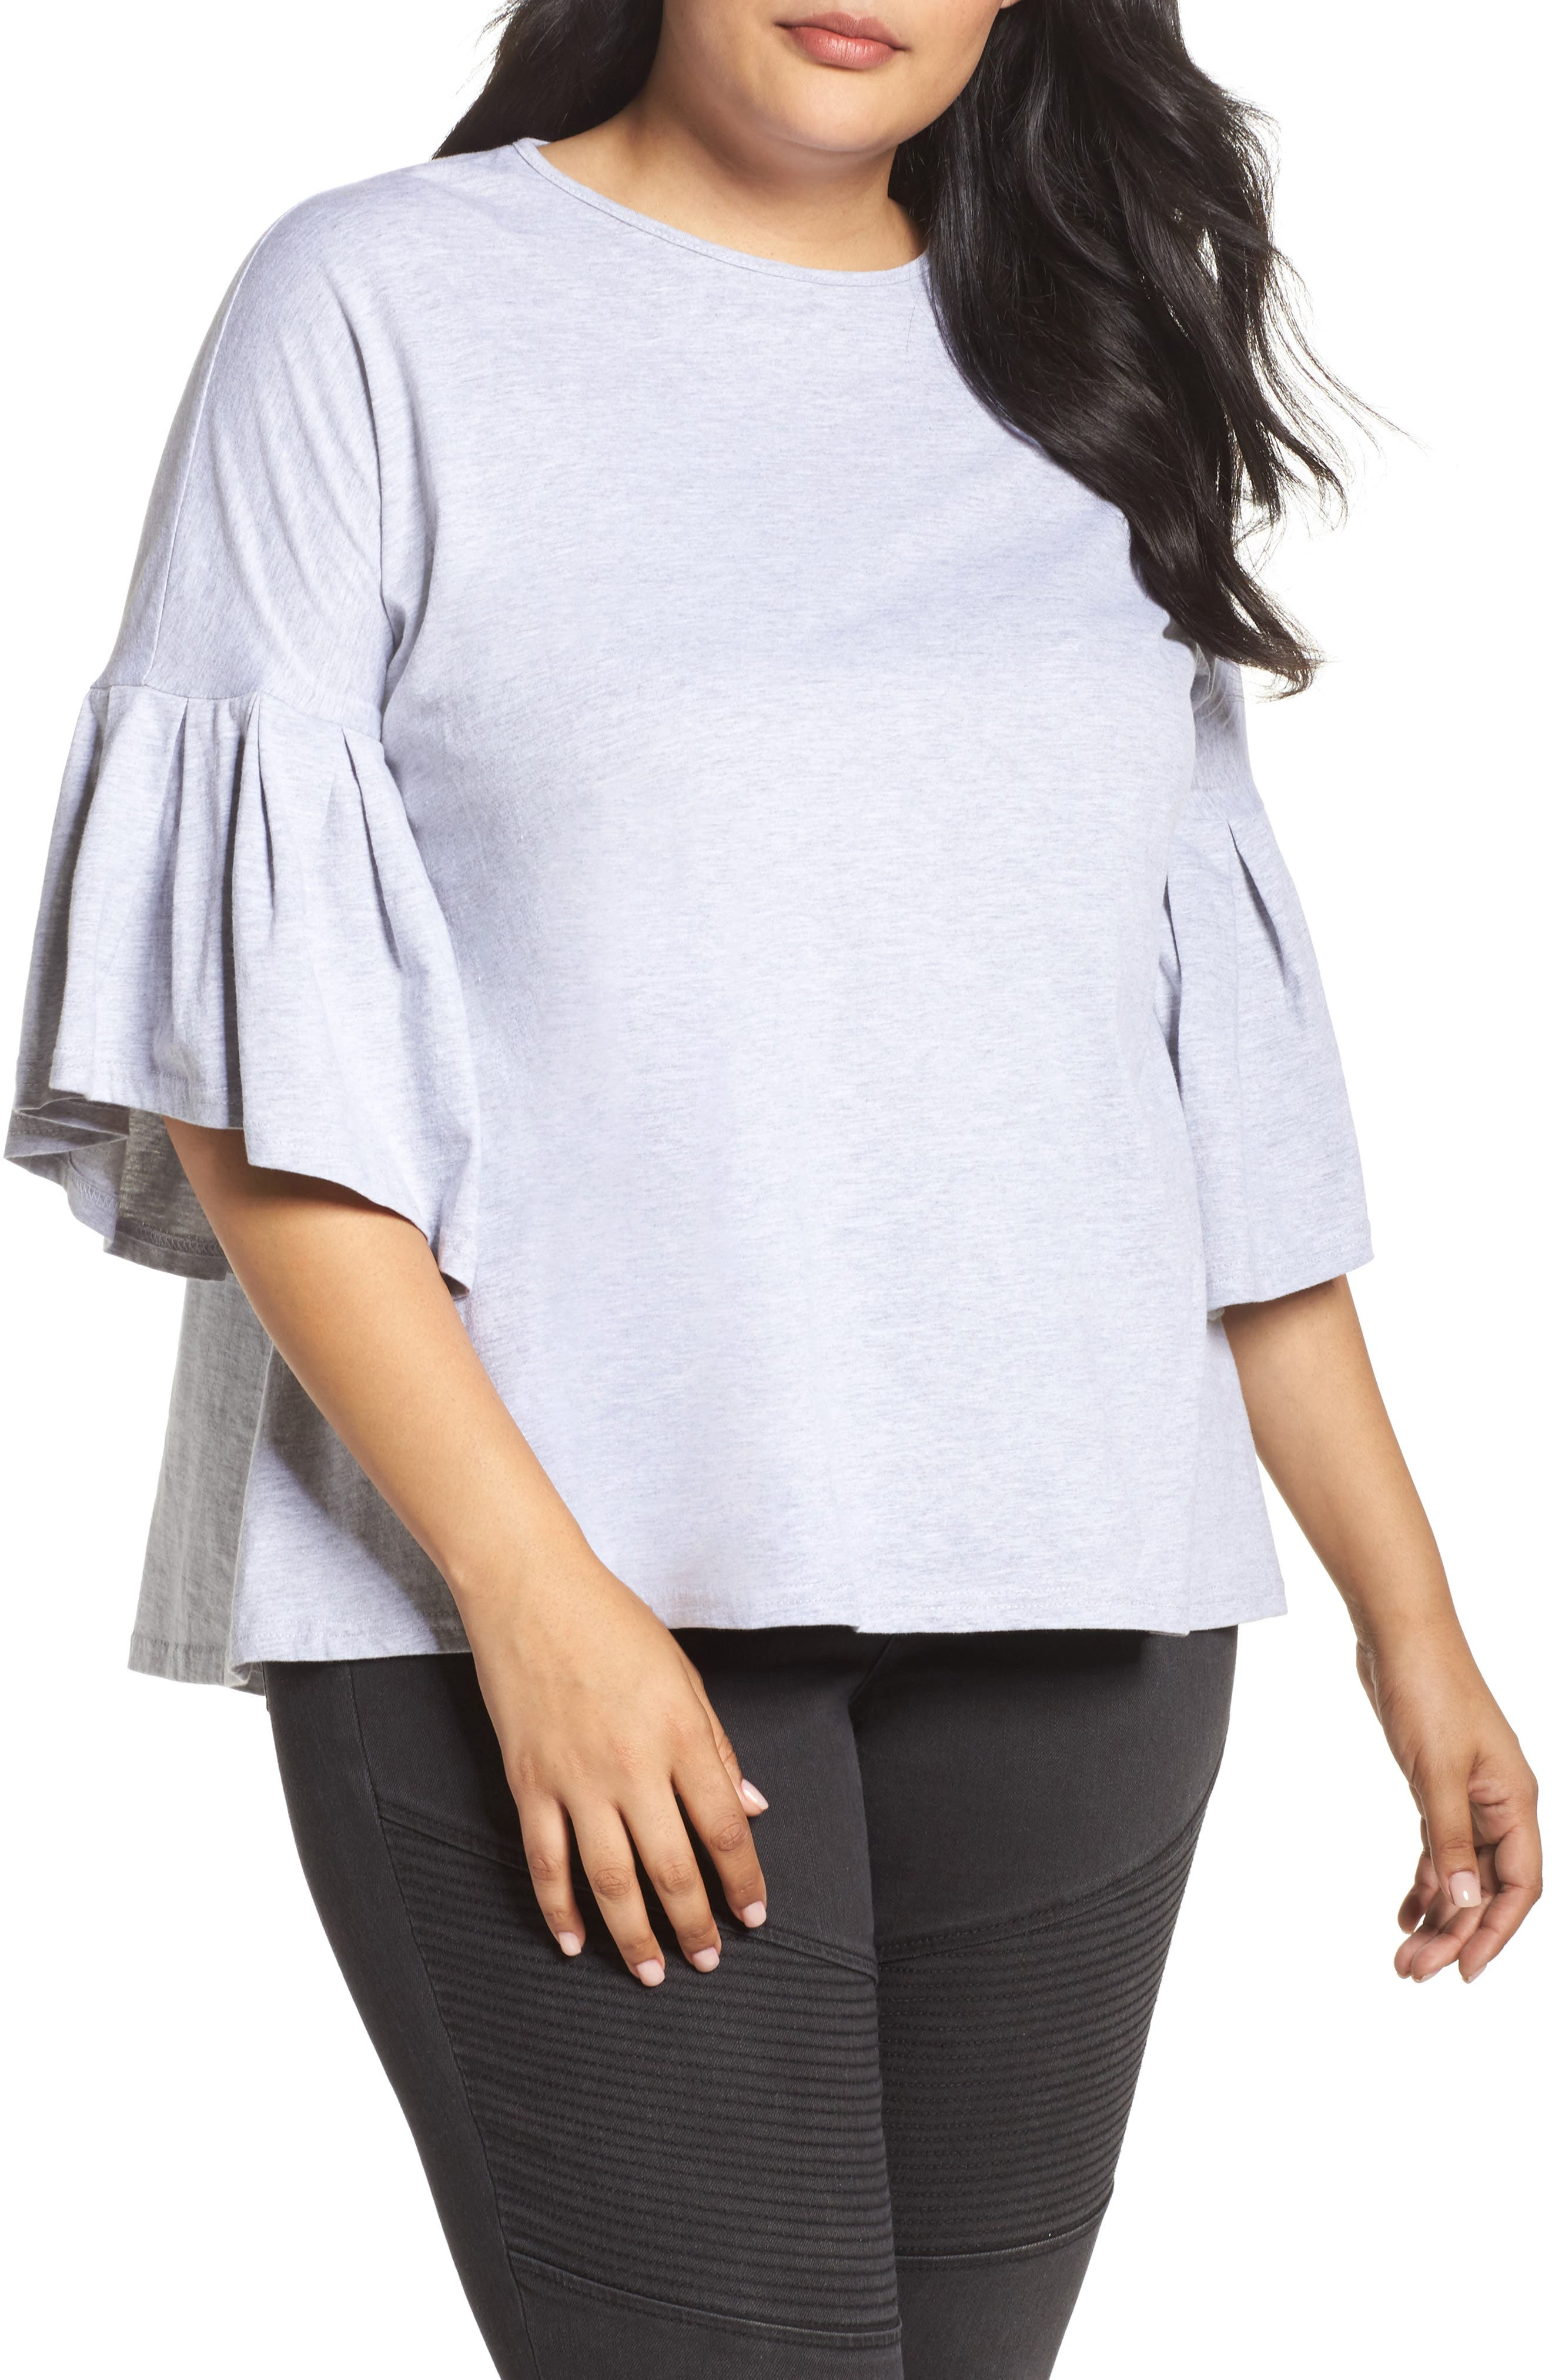 Main Image - LOST INK Bell Sleeve Cotton Blouse (Plus Size)